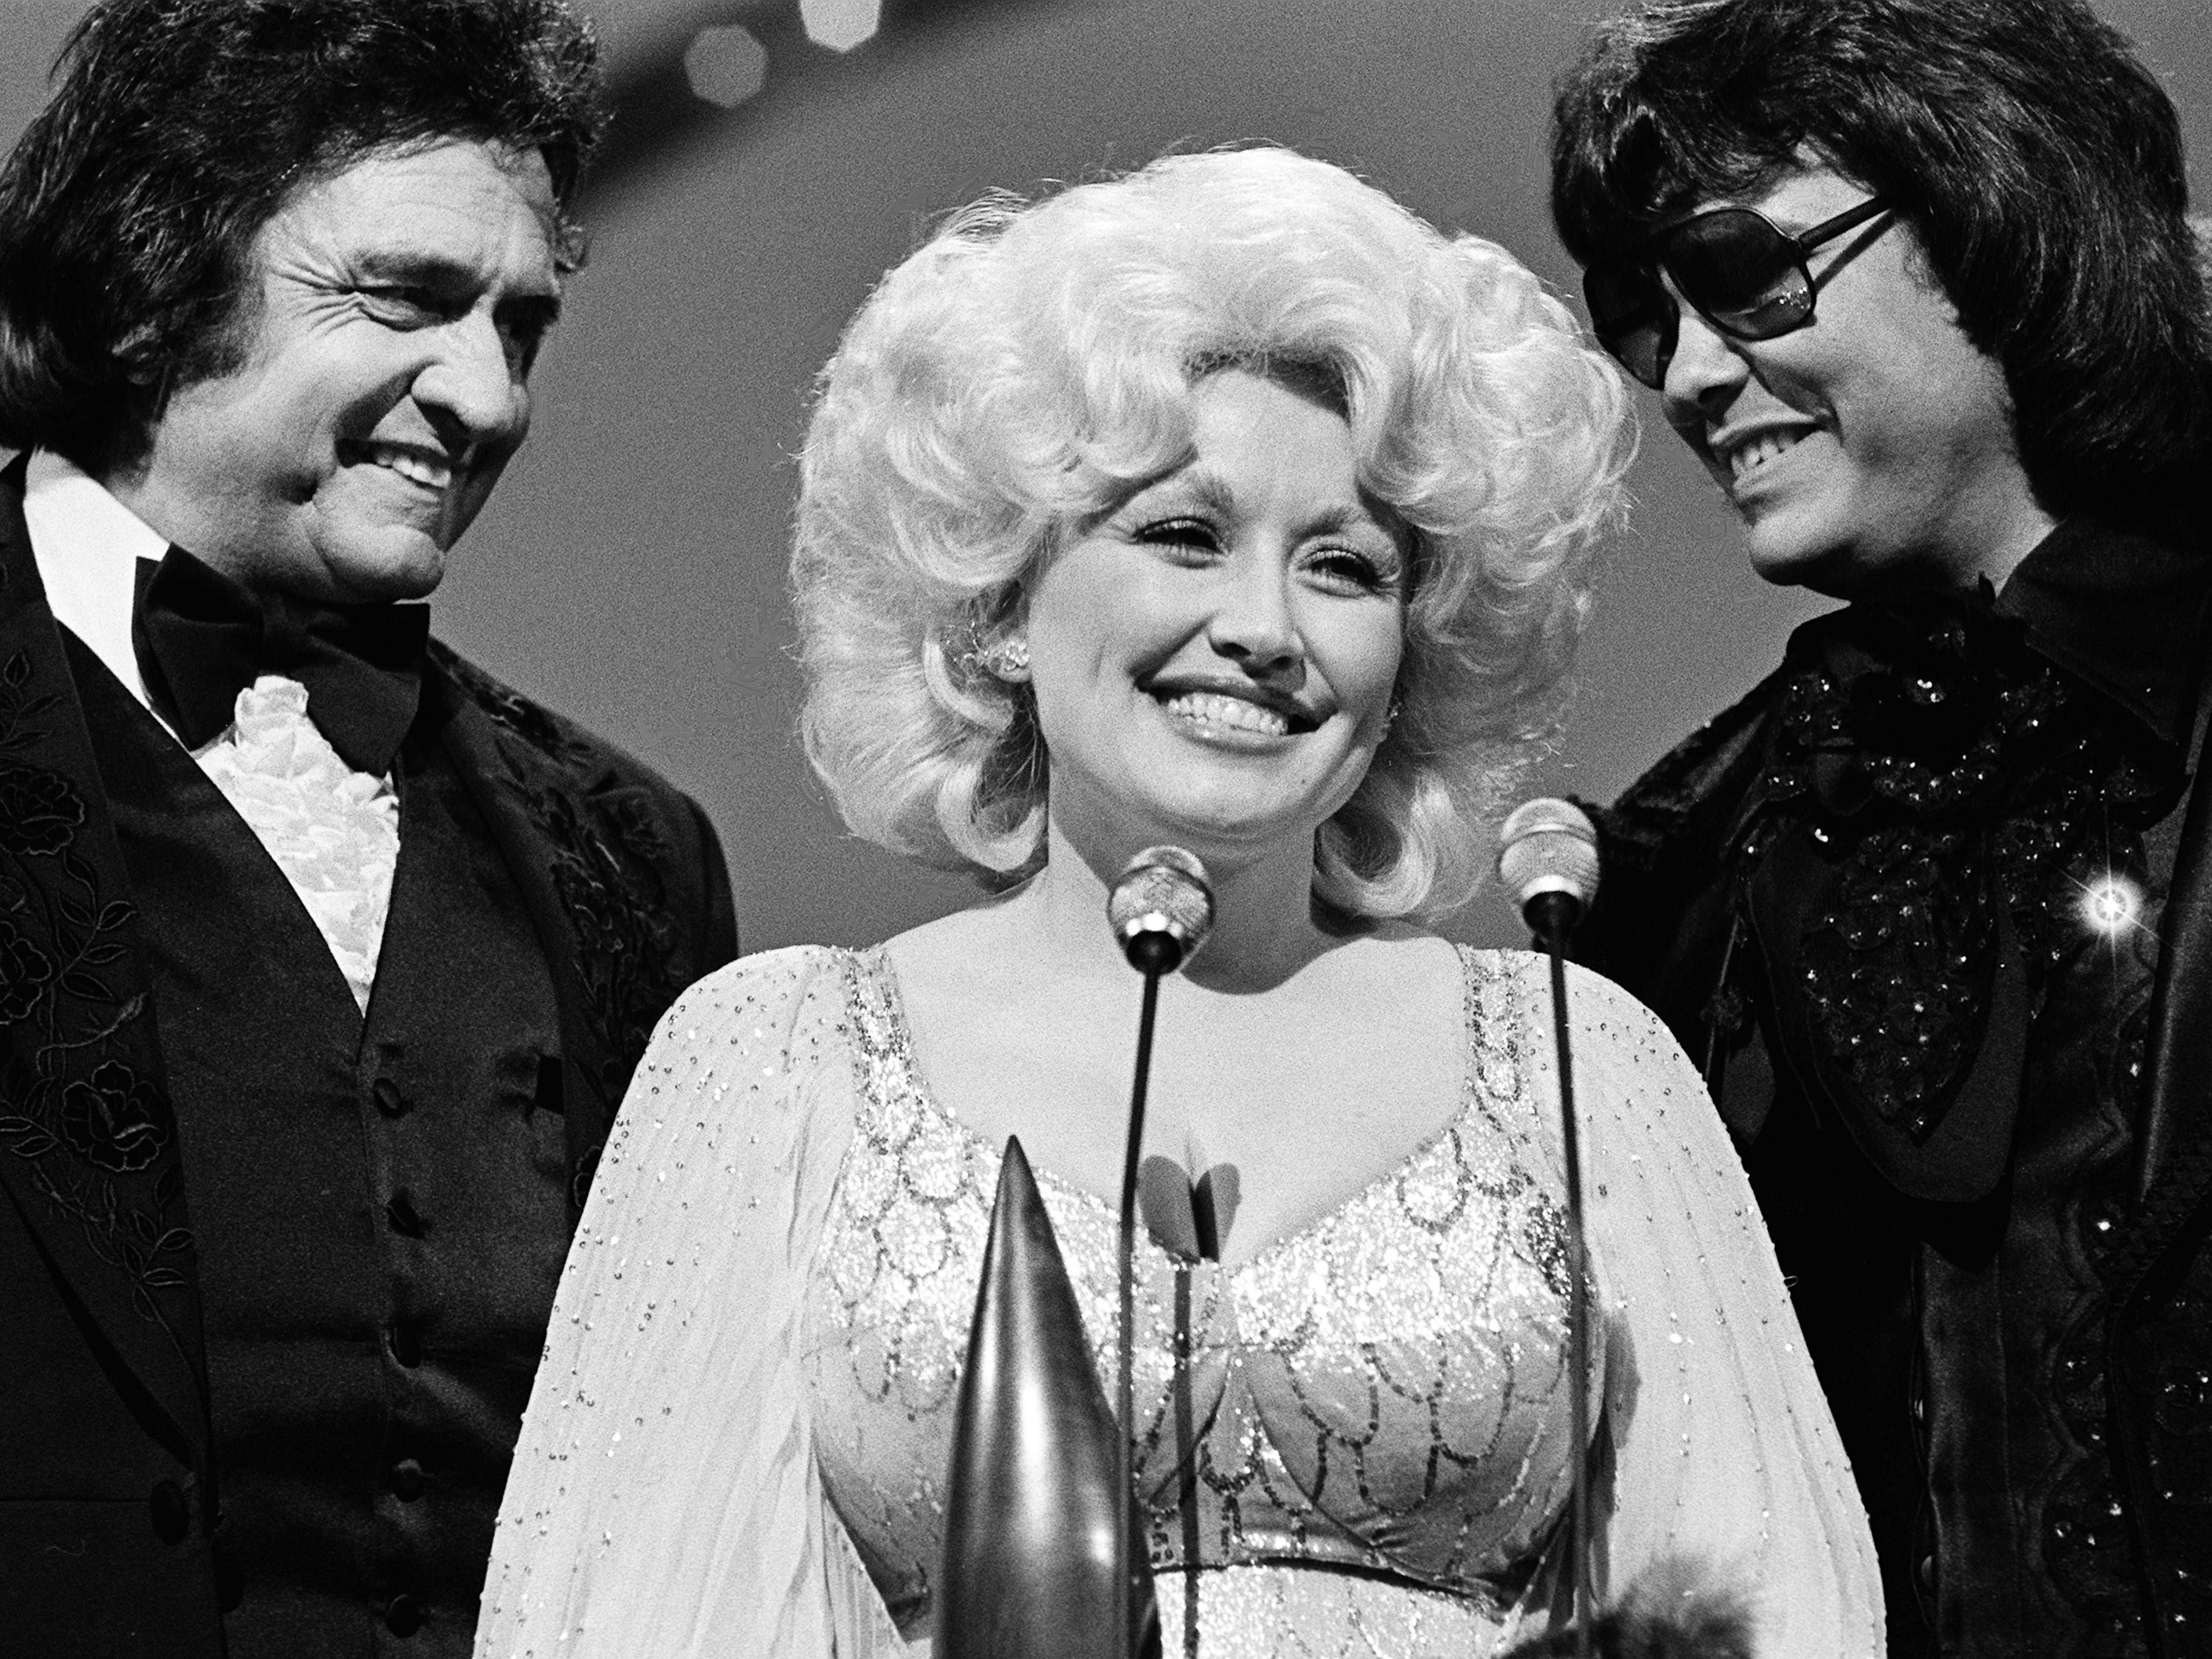 Dolly Parton accepts the Entertainer of the Year award during the 12th annual CMA Awards show Oct. 9, 1978, as presenters Johnny Cash, left, and Ronnie Milsap stand by.